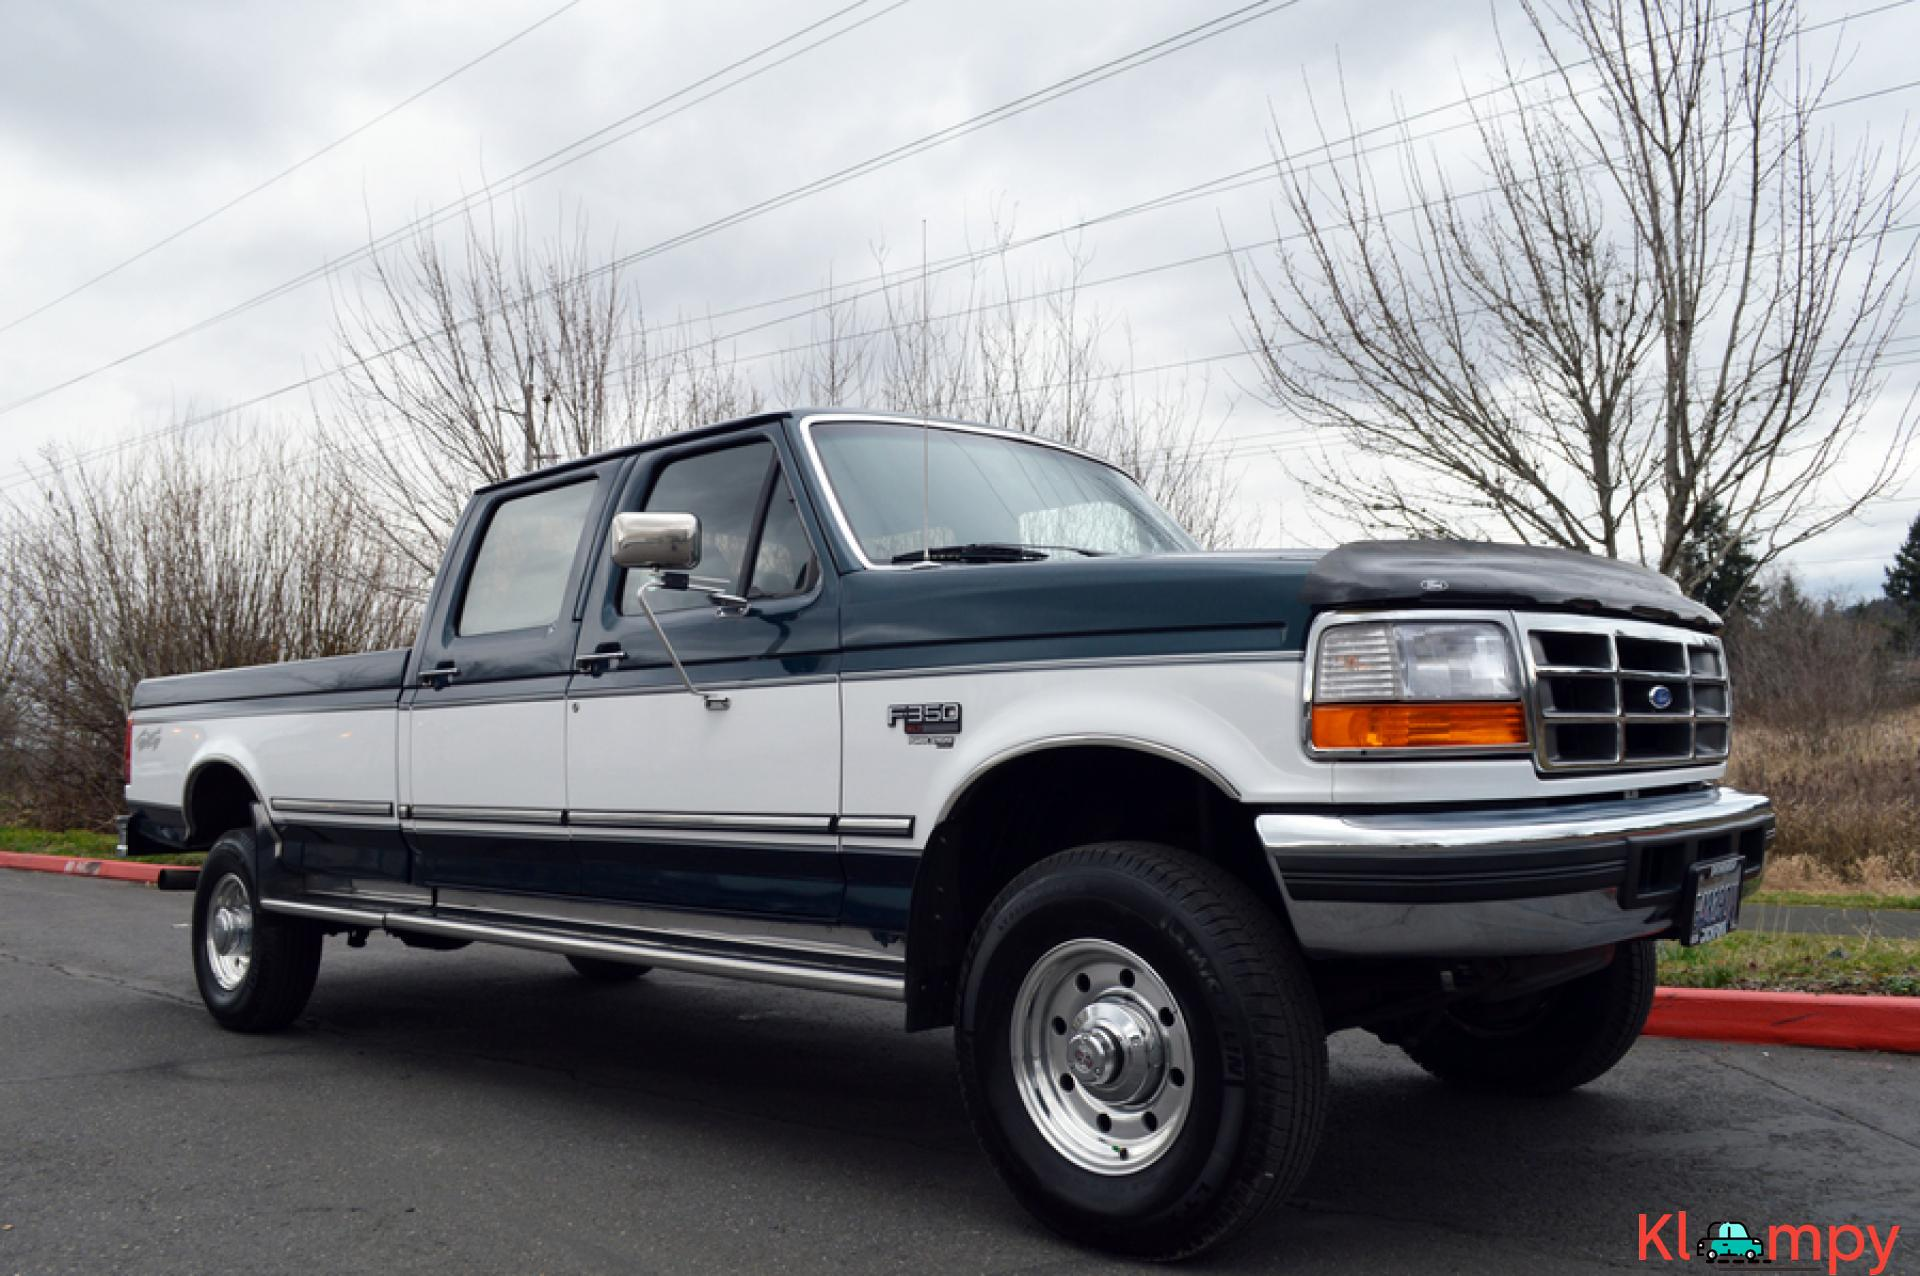 1997 FORD F-350 CREW CAB LONG BED 4WD 7.3L - 9/20